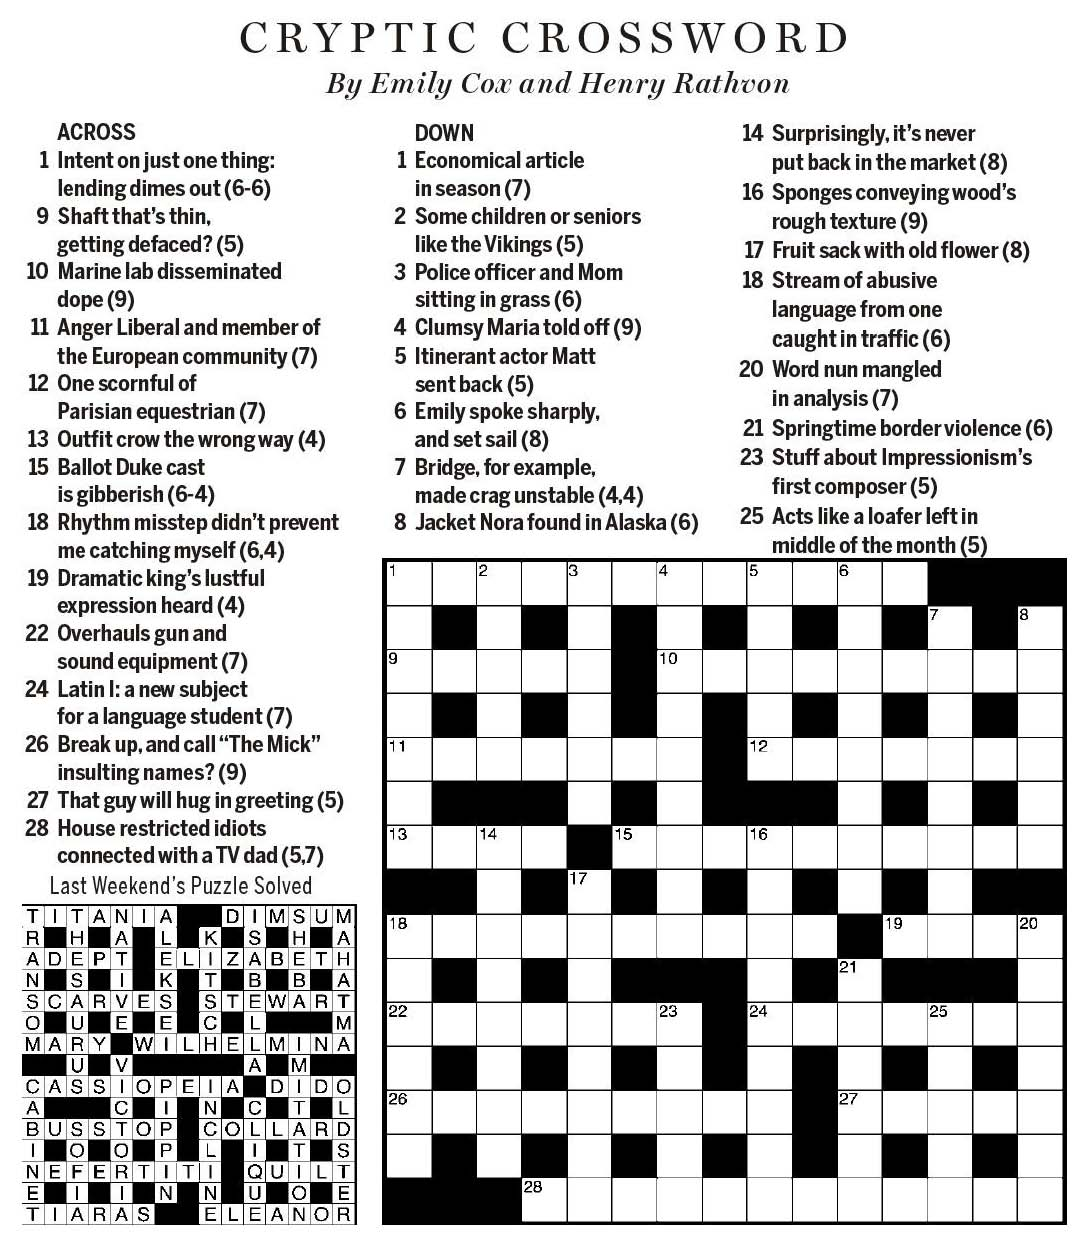 Crossword Puzzle Gallery National Post Cryptic Forum Saturday May 26 2018 Of